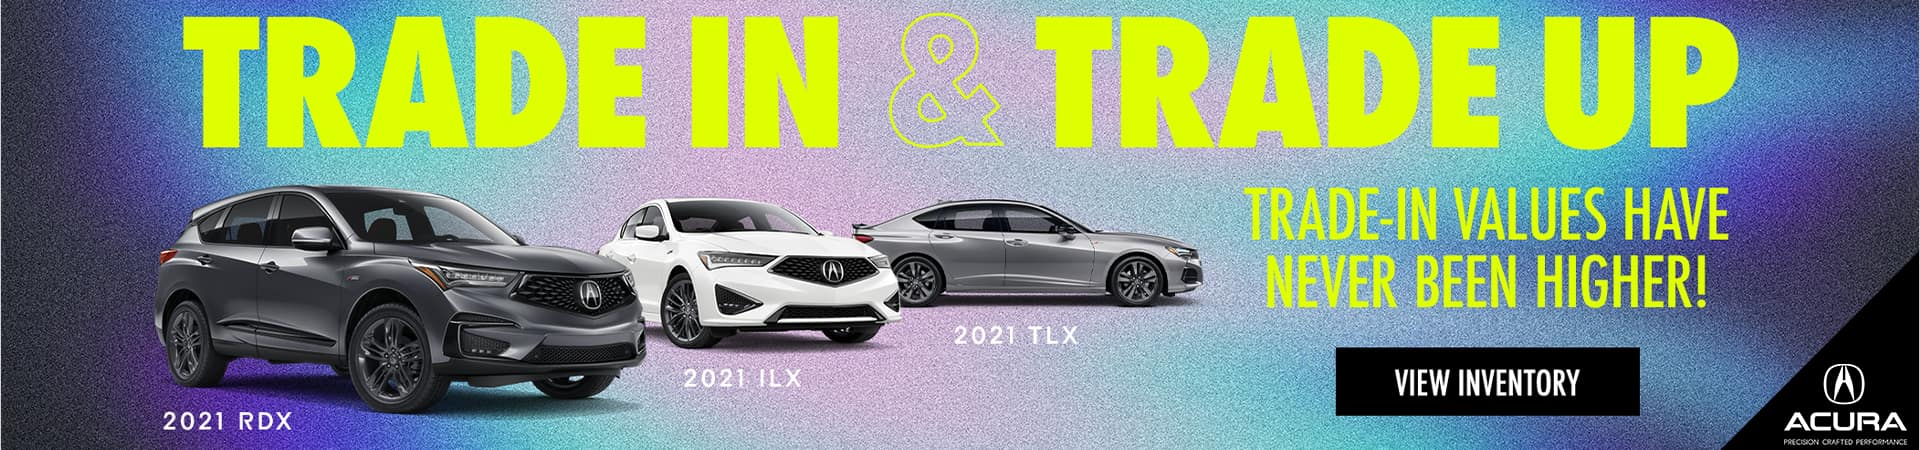 1920x450_21038_Acura Trade-In Messaging_DAA_CTROT_CA